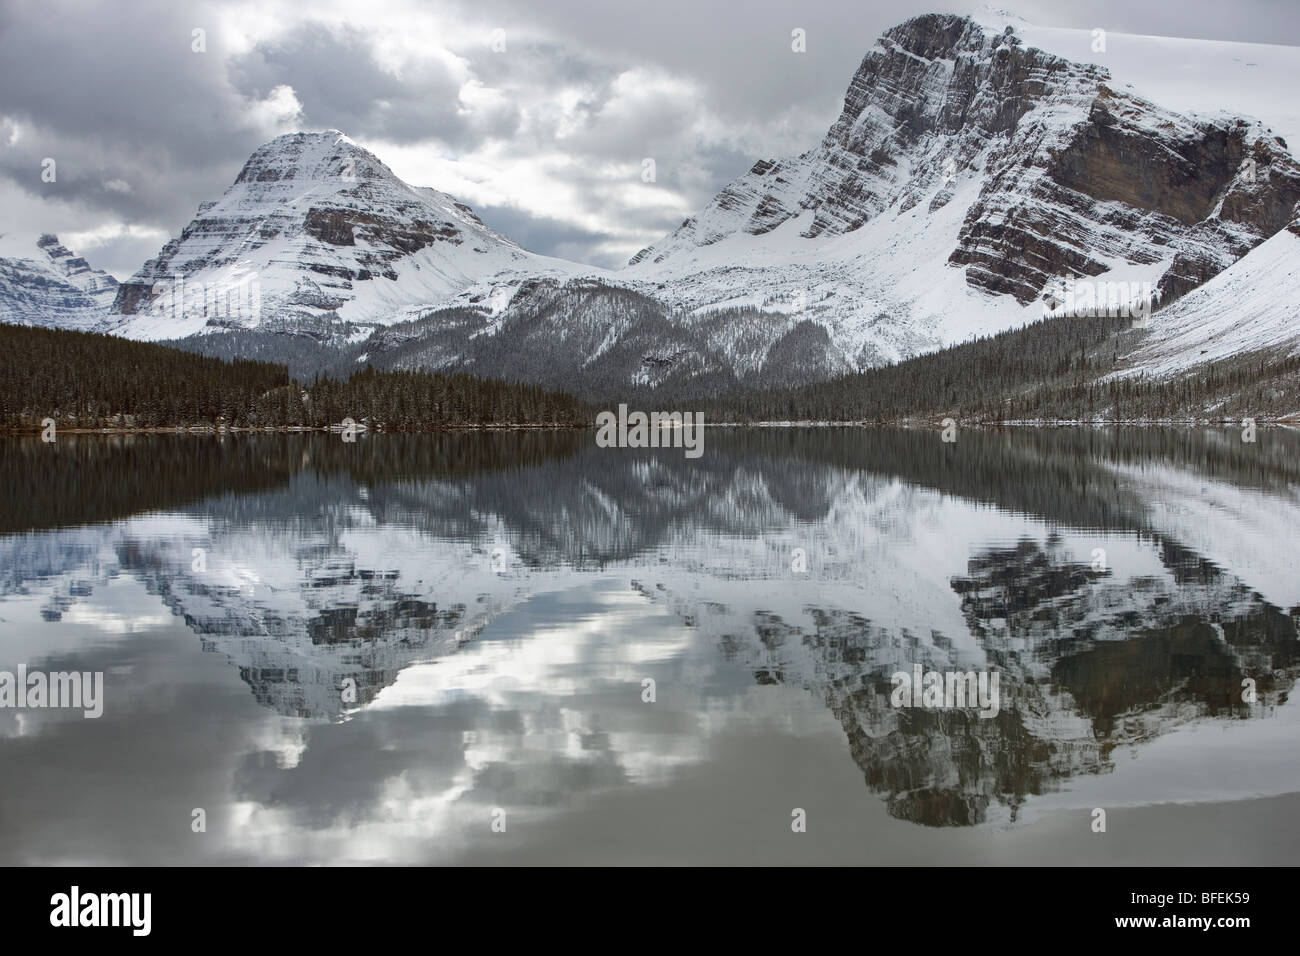 Le lac Bow, Bow Peak au sommet Bow, Banff National Park, Alberta, Canada Photo Stock